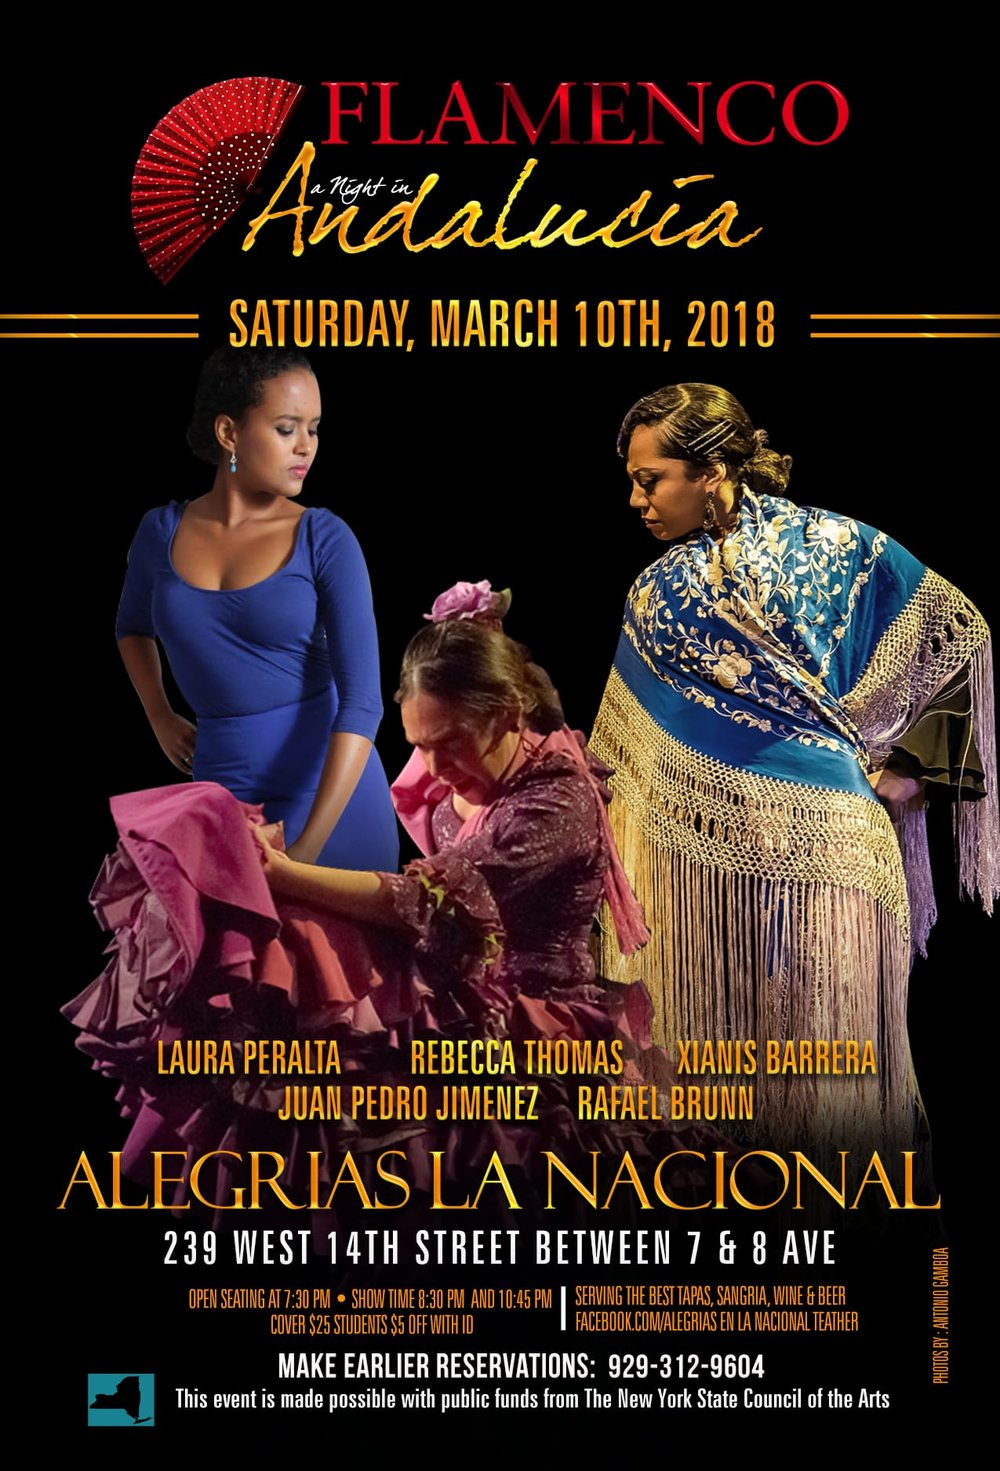 LAS MUJERESSaturday, March 10 - 8:30 & 10:45pmAlegrias en la nacional239 west 14th street, ManhattanINFO -